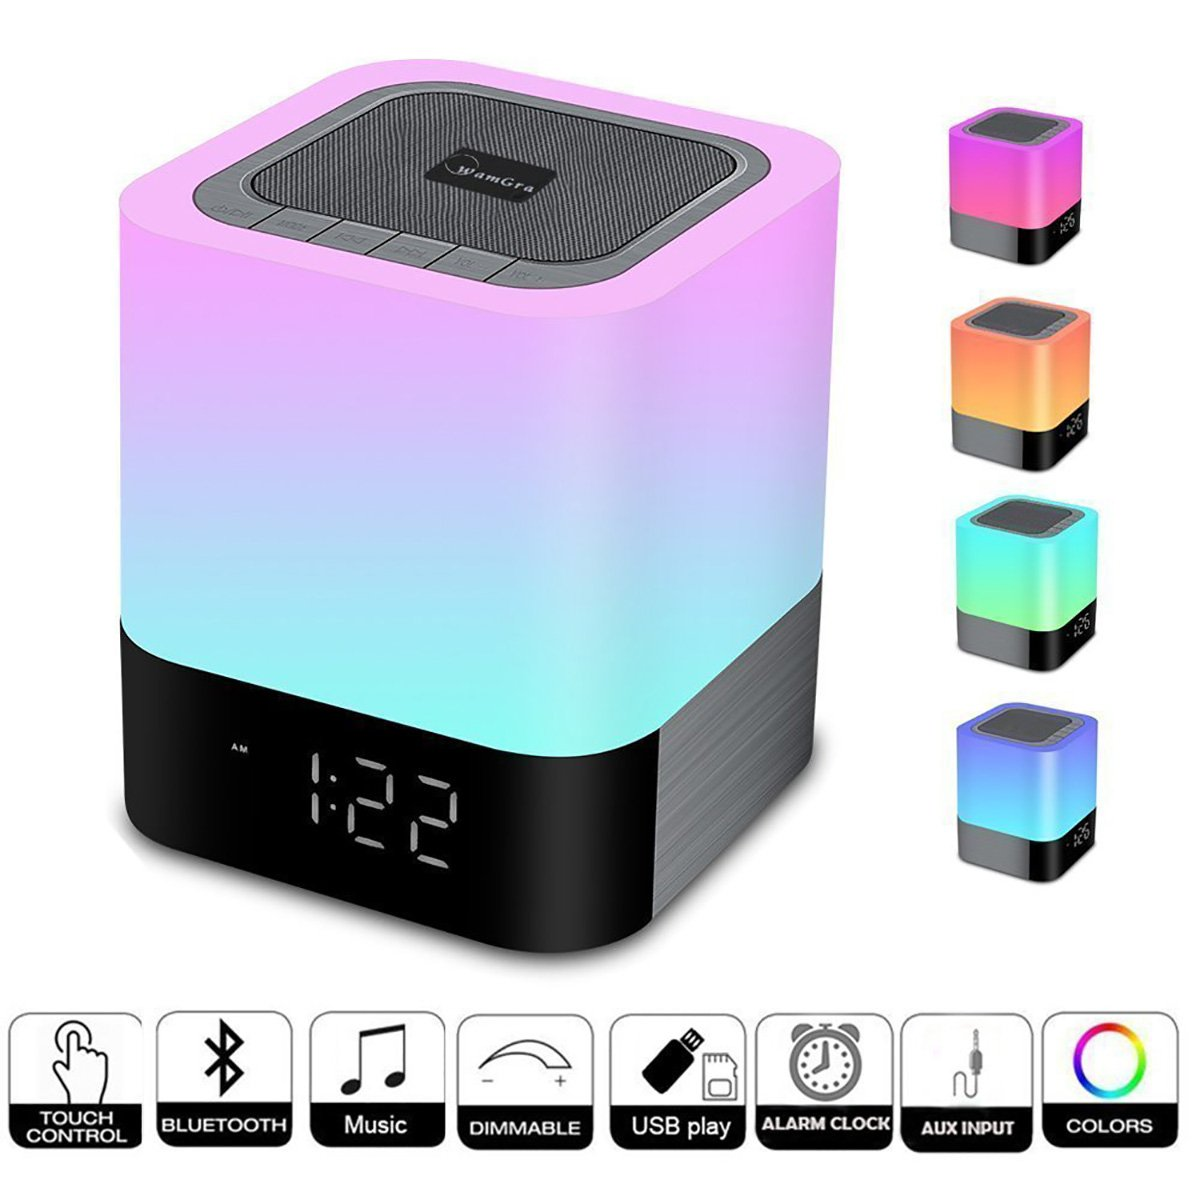 WamGra Night lights Bluetooth Speaker,Touch Sensor Bedside Lamp Dimmable Warm Light,Color Changing Bedside Lamp,MP3 Music Player,Wireless Speaker with Lights (Newest Version) by WamGra (Image #1)